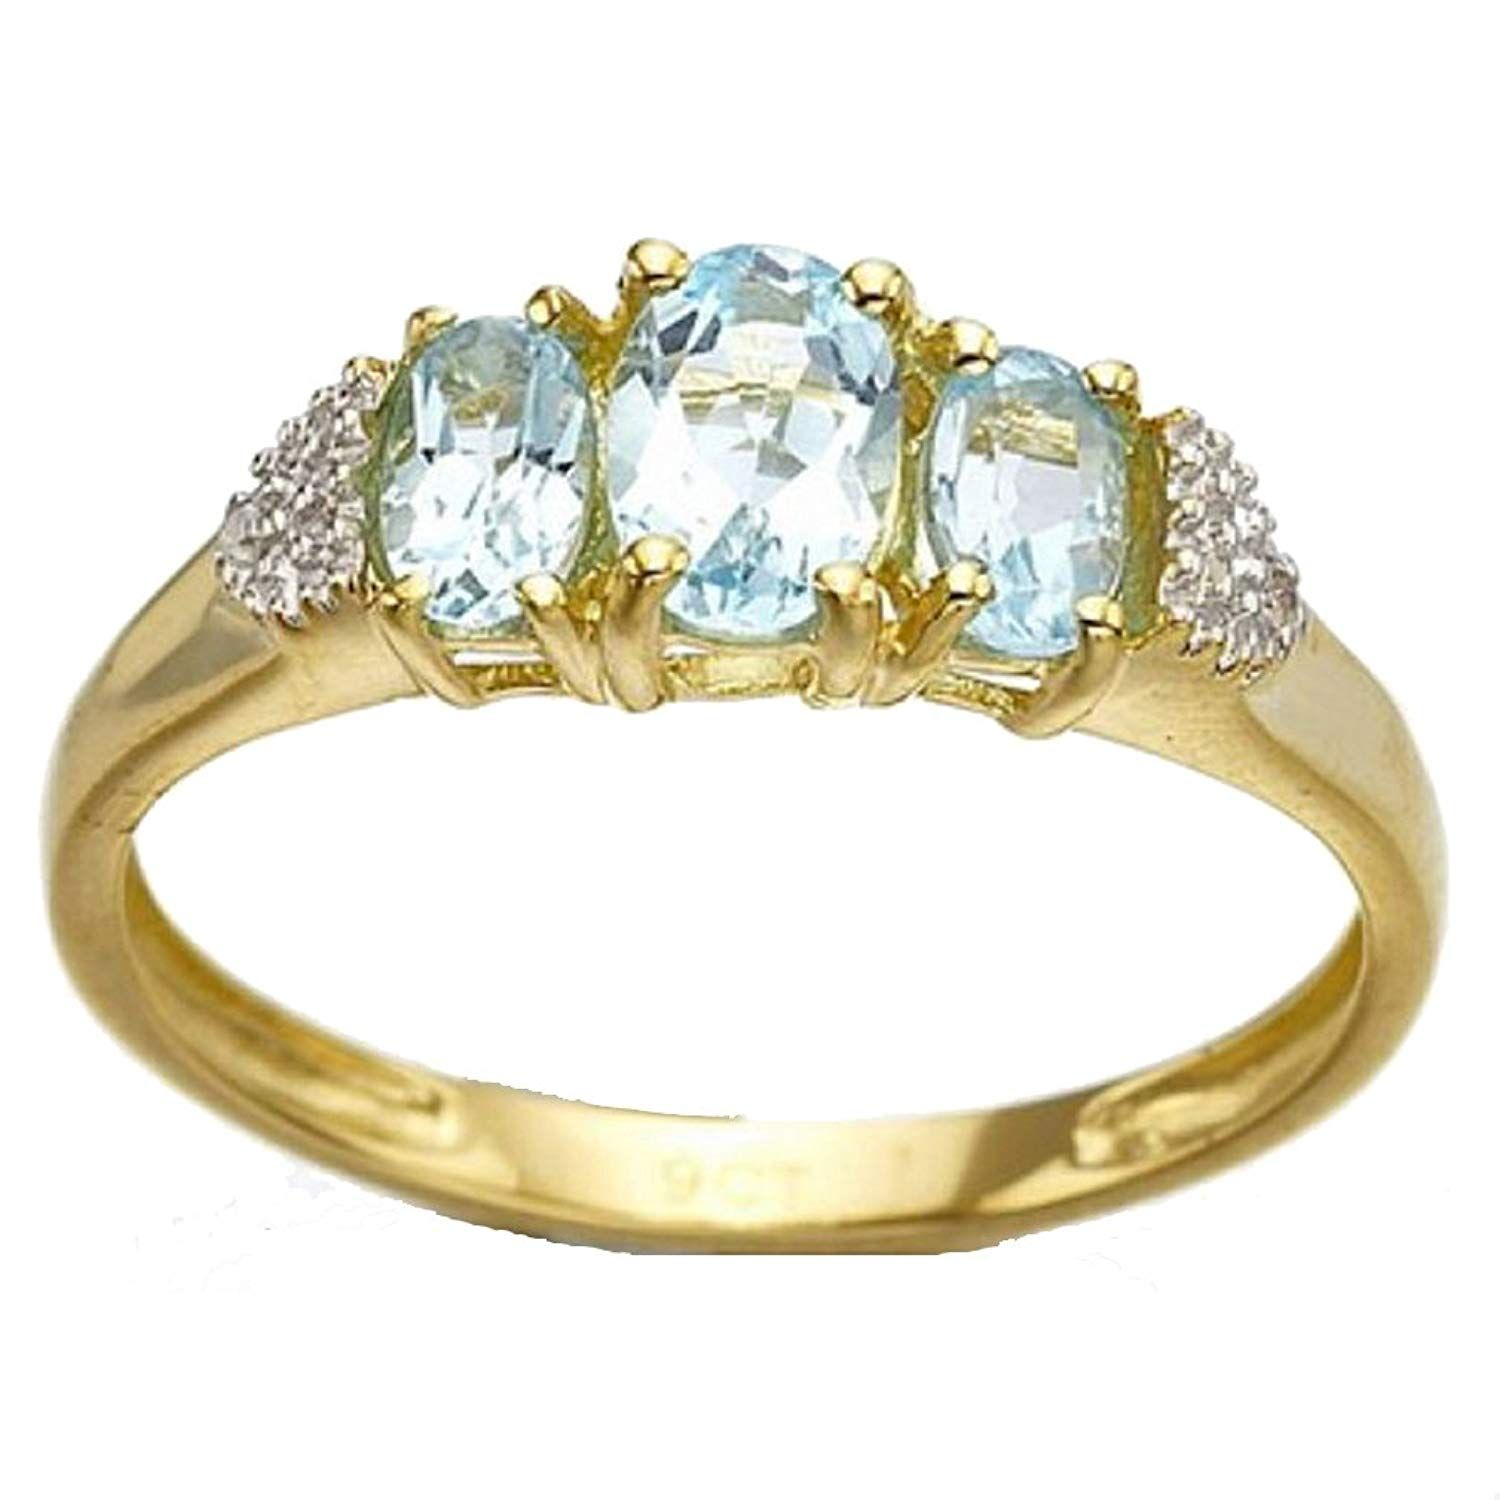 d455b4bb39b SUOHUAN Jewelry Three Stones Oval Blue Created Aquamarine Yellow Gold  Filled Halo Engagement Promise Wedding Ring Band for Women Size 6 to 10     Wonderful ...